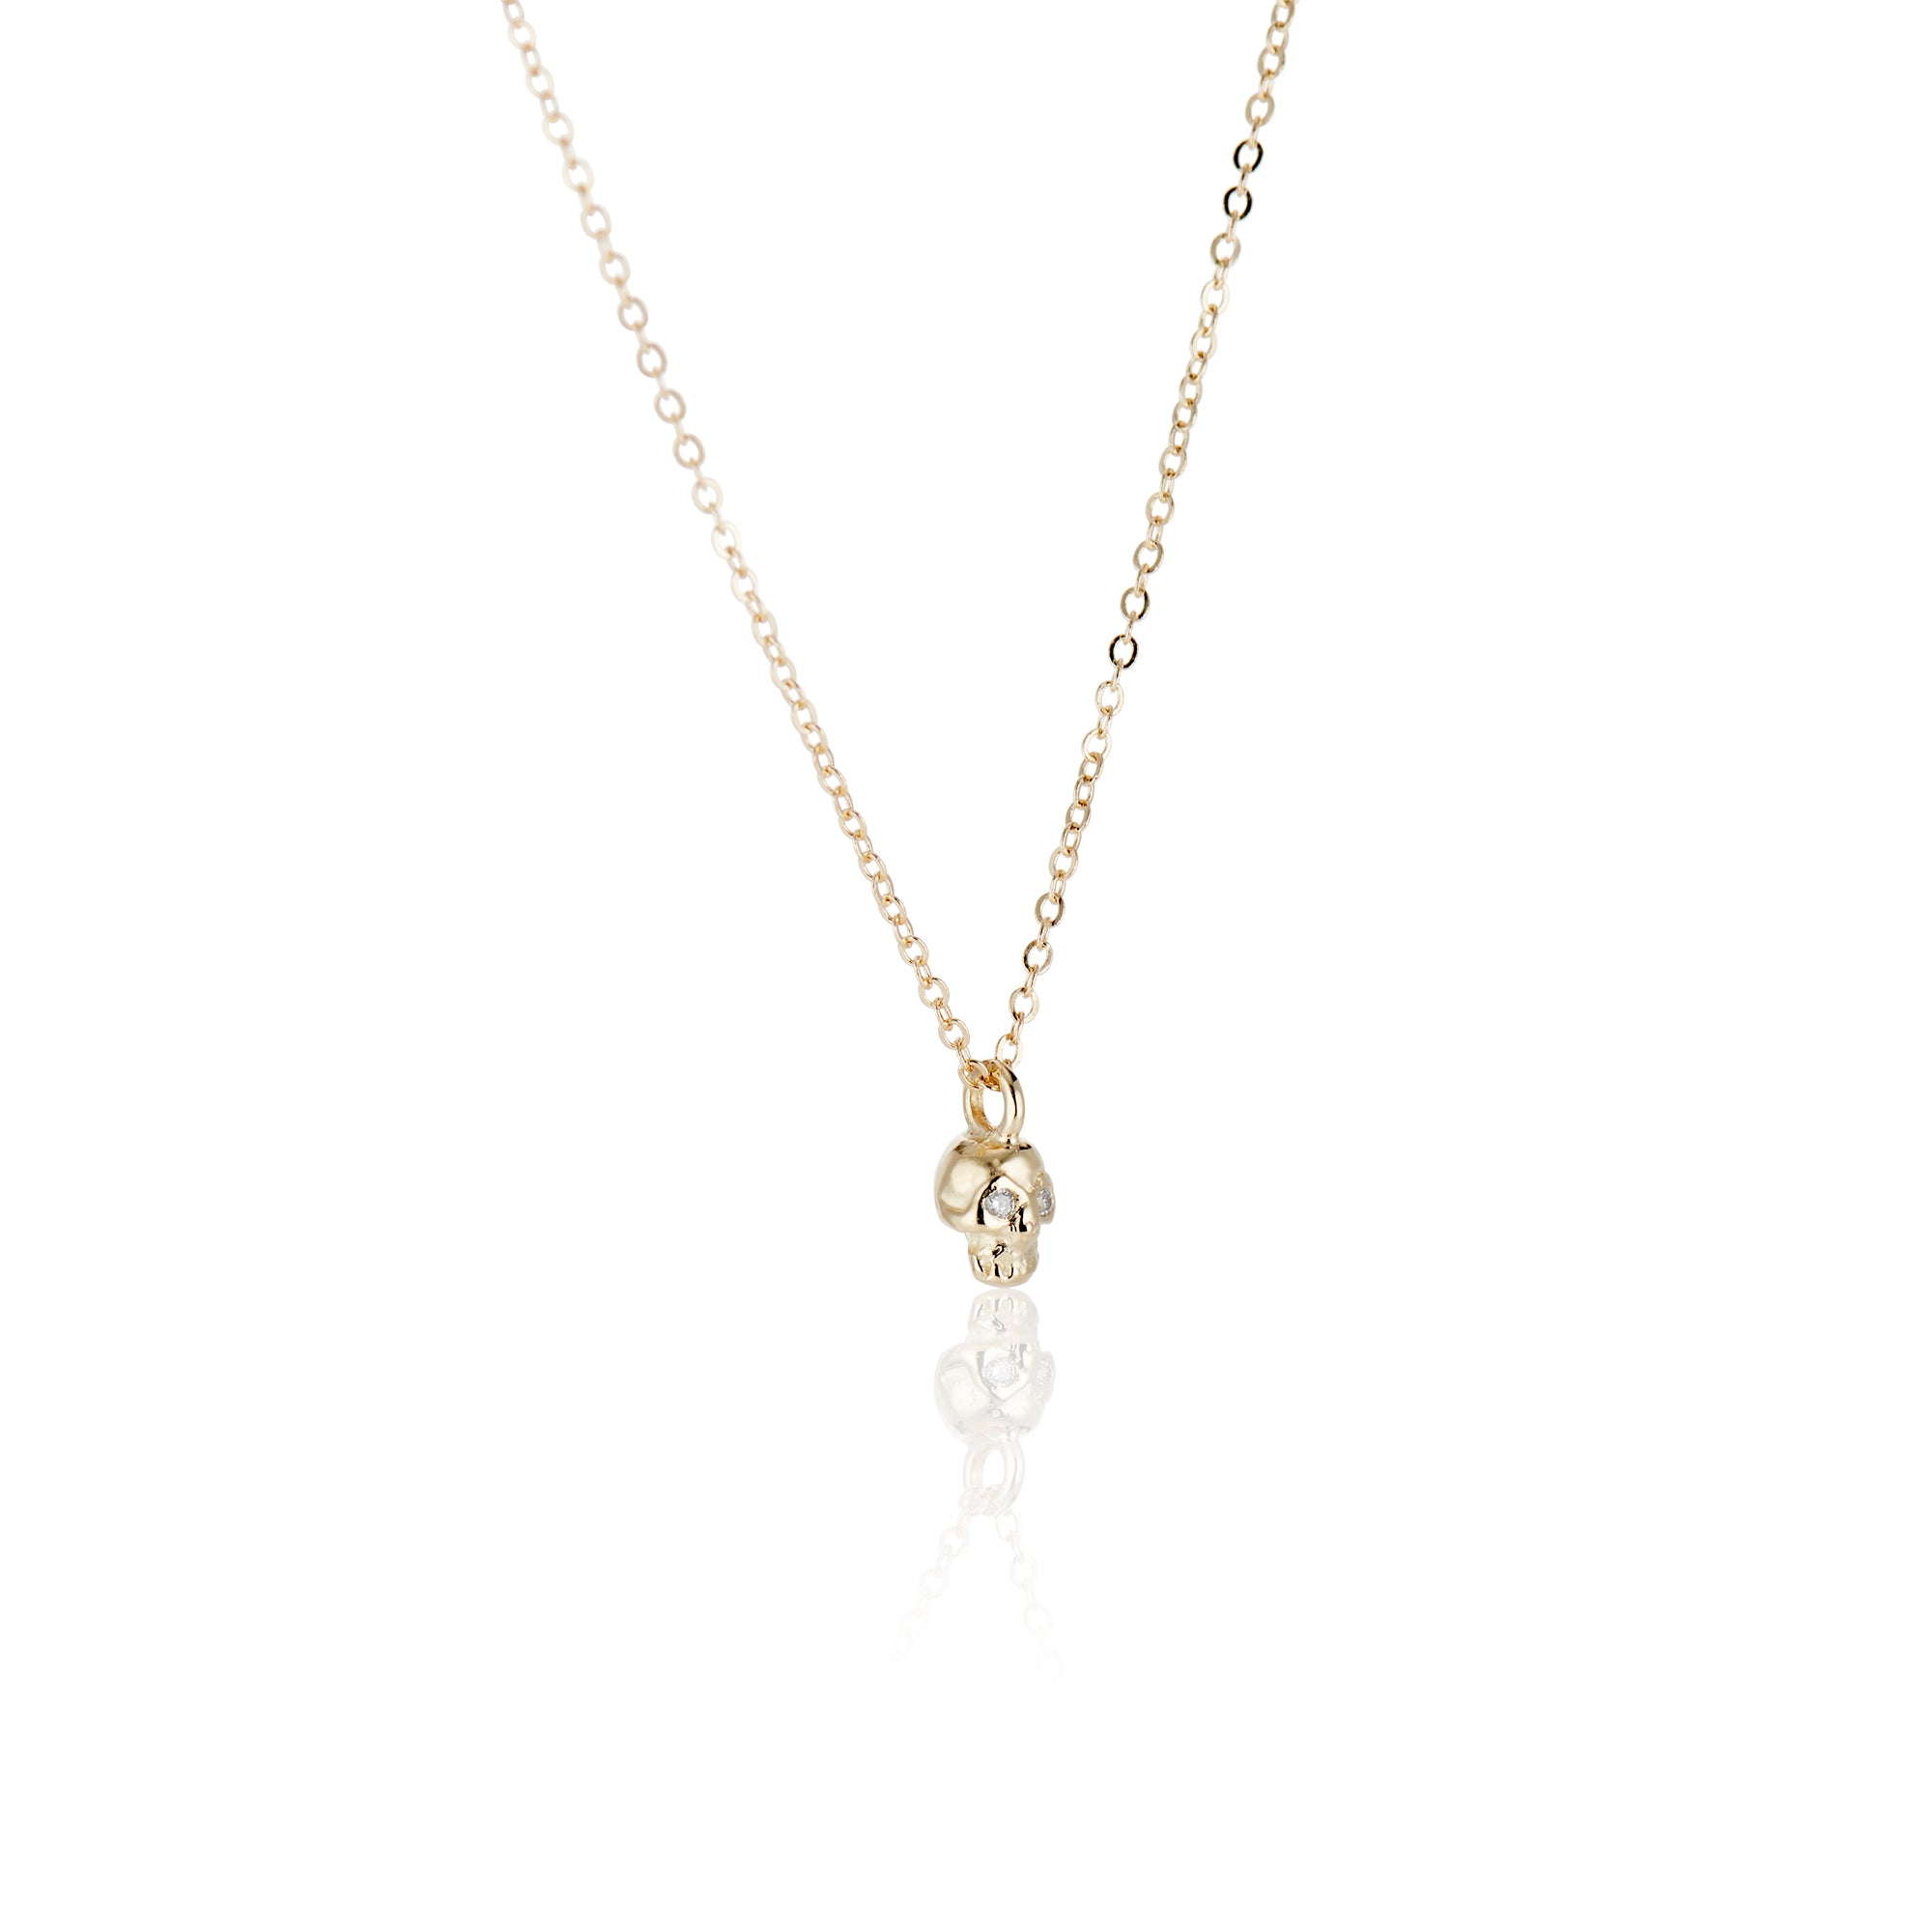 Teensy Memento Mori Skull Necklace - Charlie and Marcelle